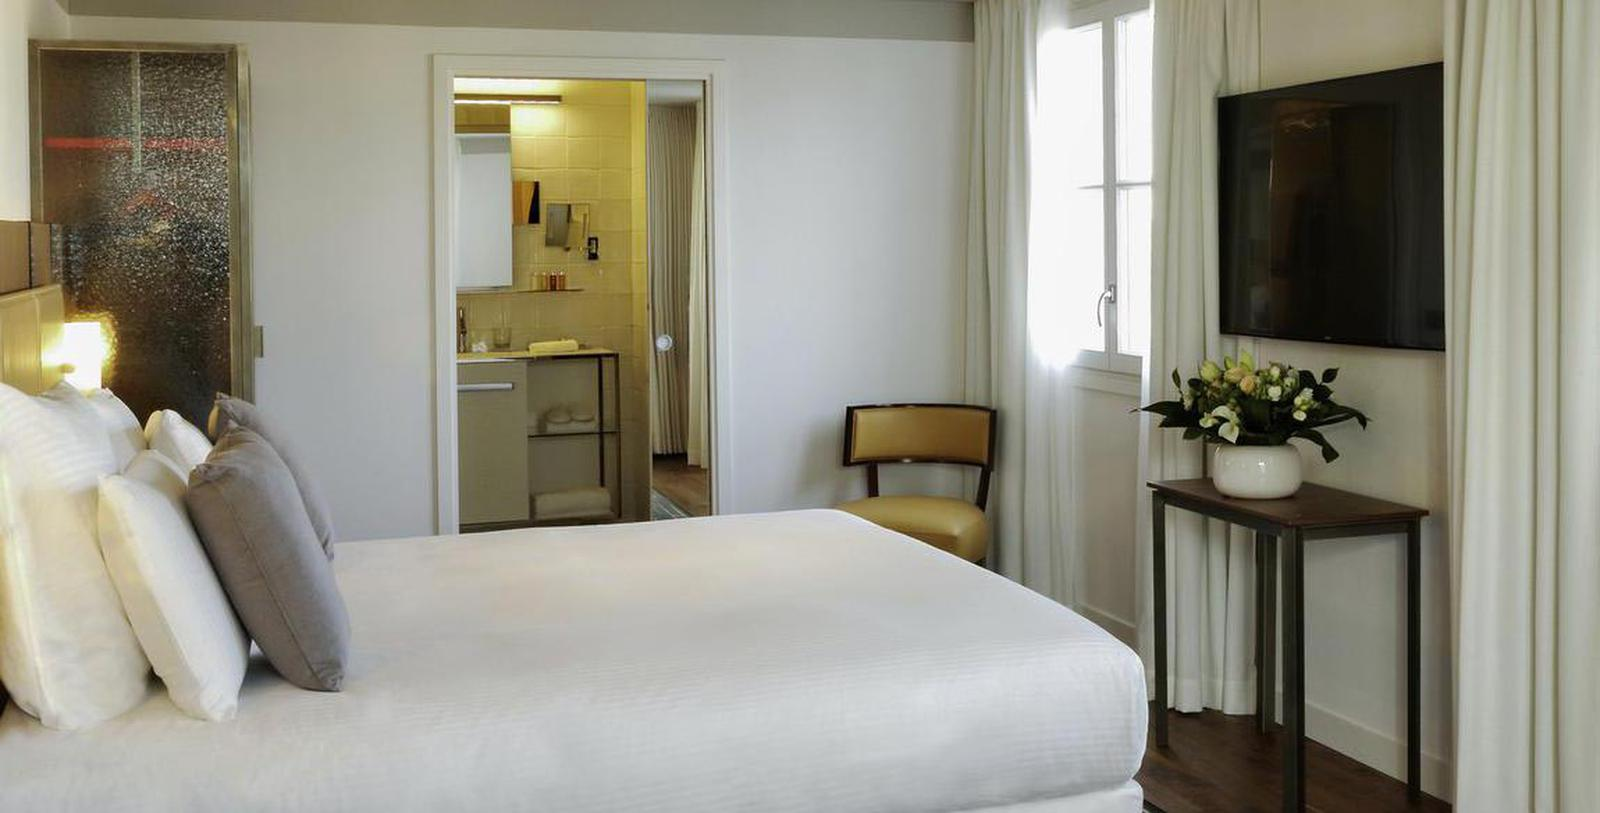 Image of Guestroom Interior Hôtel Paris Bastille Boutet - MGallery by Sofitel, 1926, Member of Historic Hotels Worldwide, in Paris, France, Location